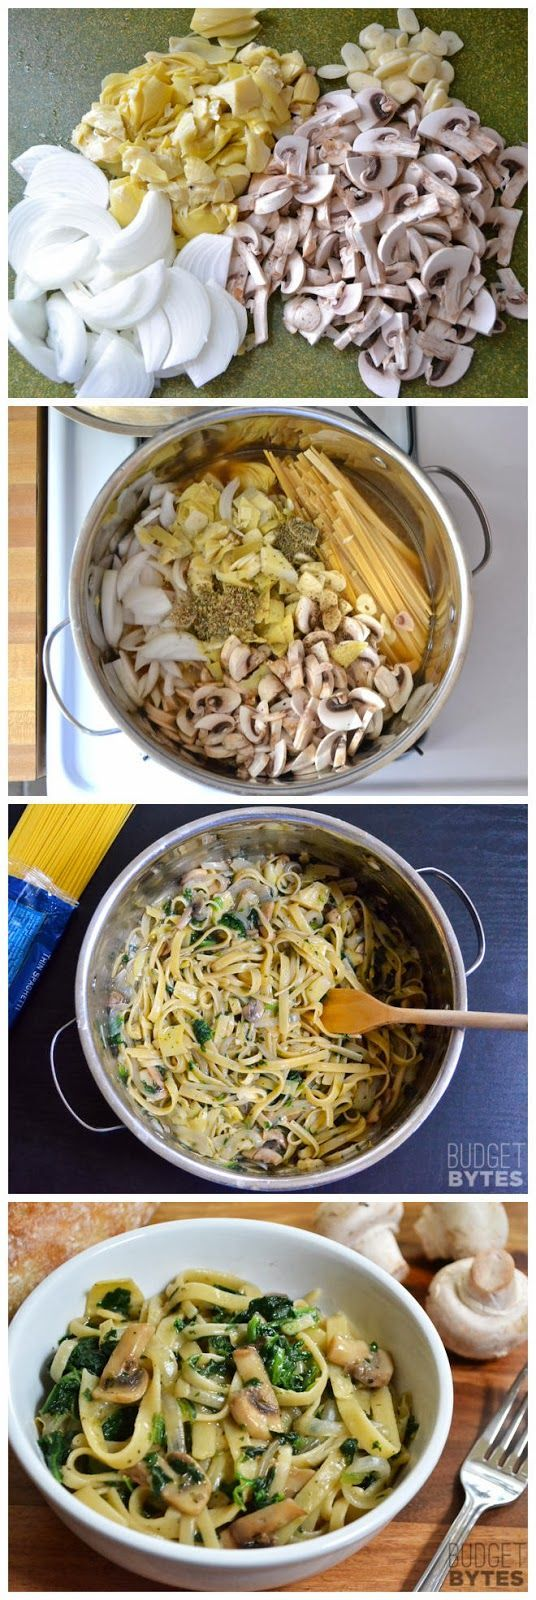 Spinach & Artichoke Wonderpot (another one pot wonder recipe)    Ingredients      8 oz. mushrooms  1 (14 oz.) can artichoke hearts  4 cloves garlic  1 medium yellow onion  5 cups vegetable broth  2 Tbsp olive oil  12 oz. fettuccine  1 tsp dried oregano  ½ tsp dried thyme  freshly cracked pepper (15-20 cranks)  4 oz. frozen cut spinach